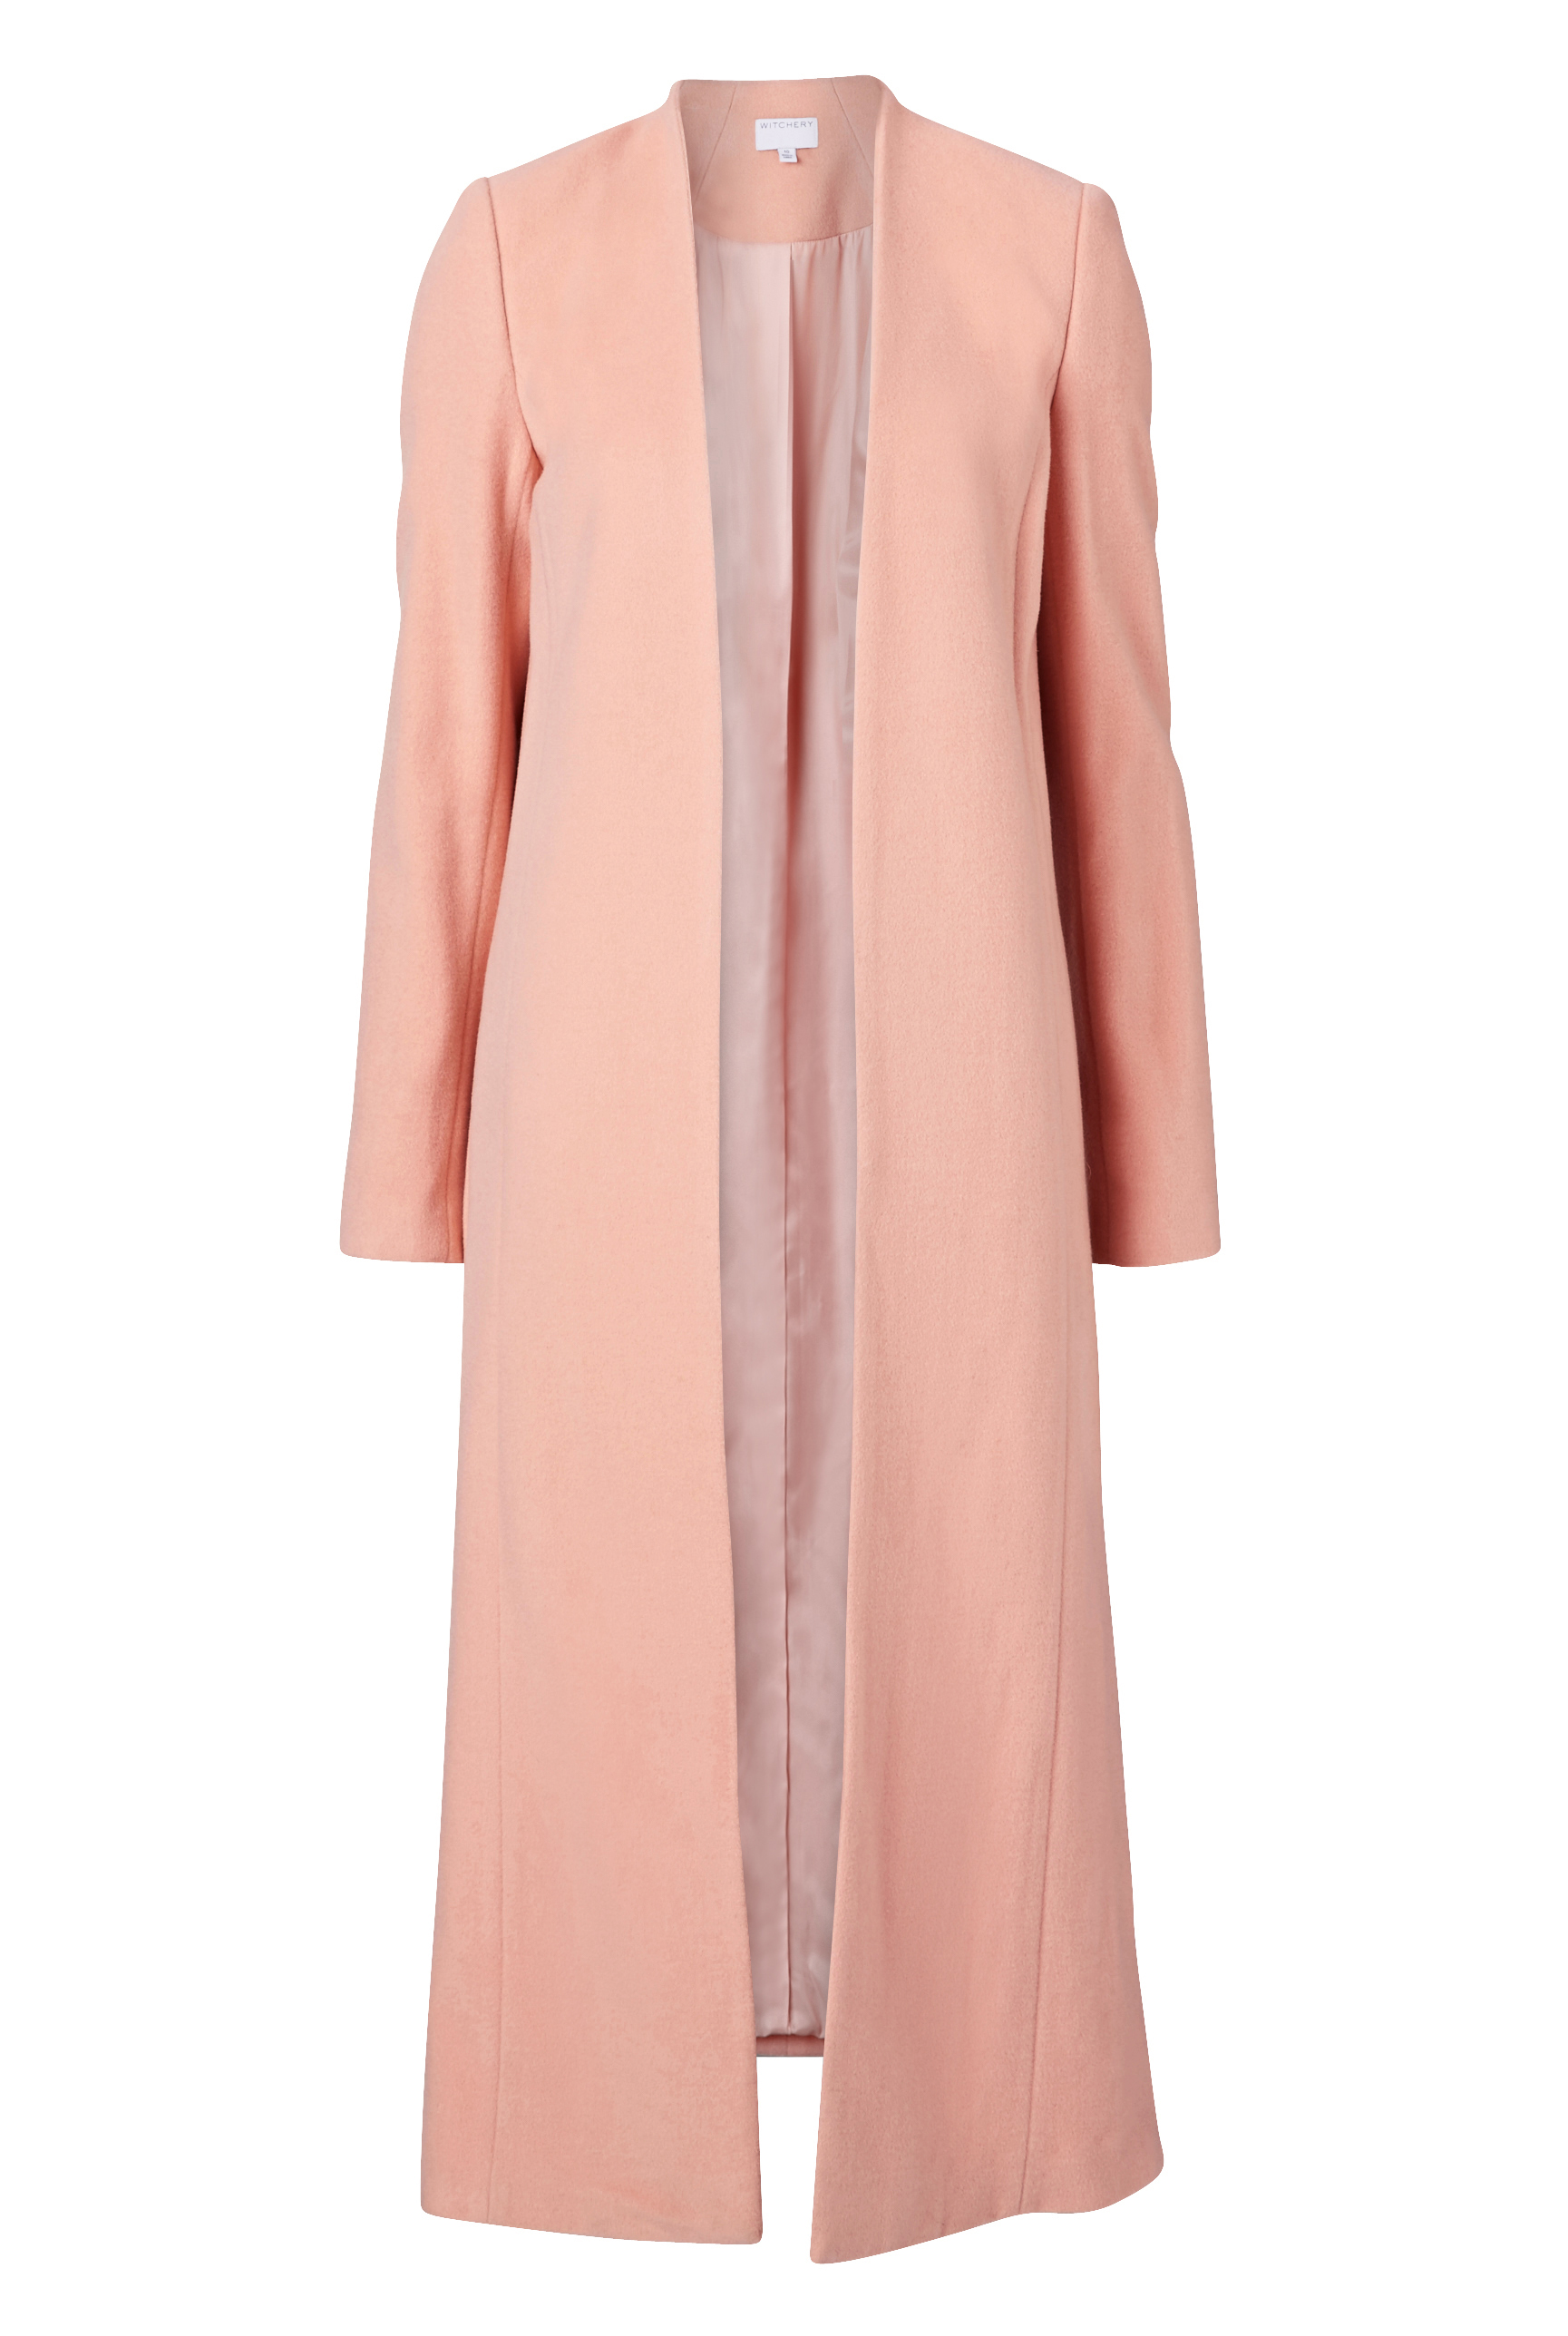 60190063_Witchery First Edition Maia Split Coat, RRP$499.90